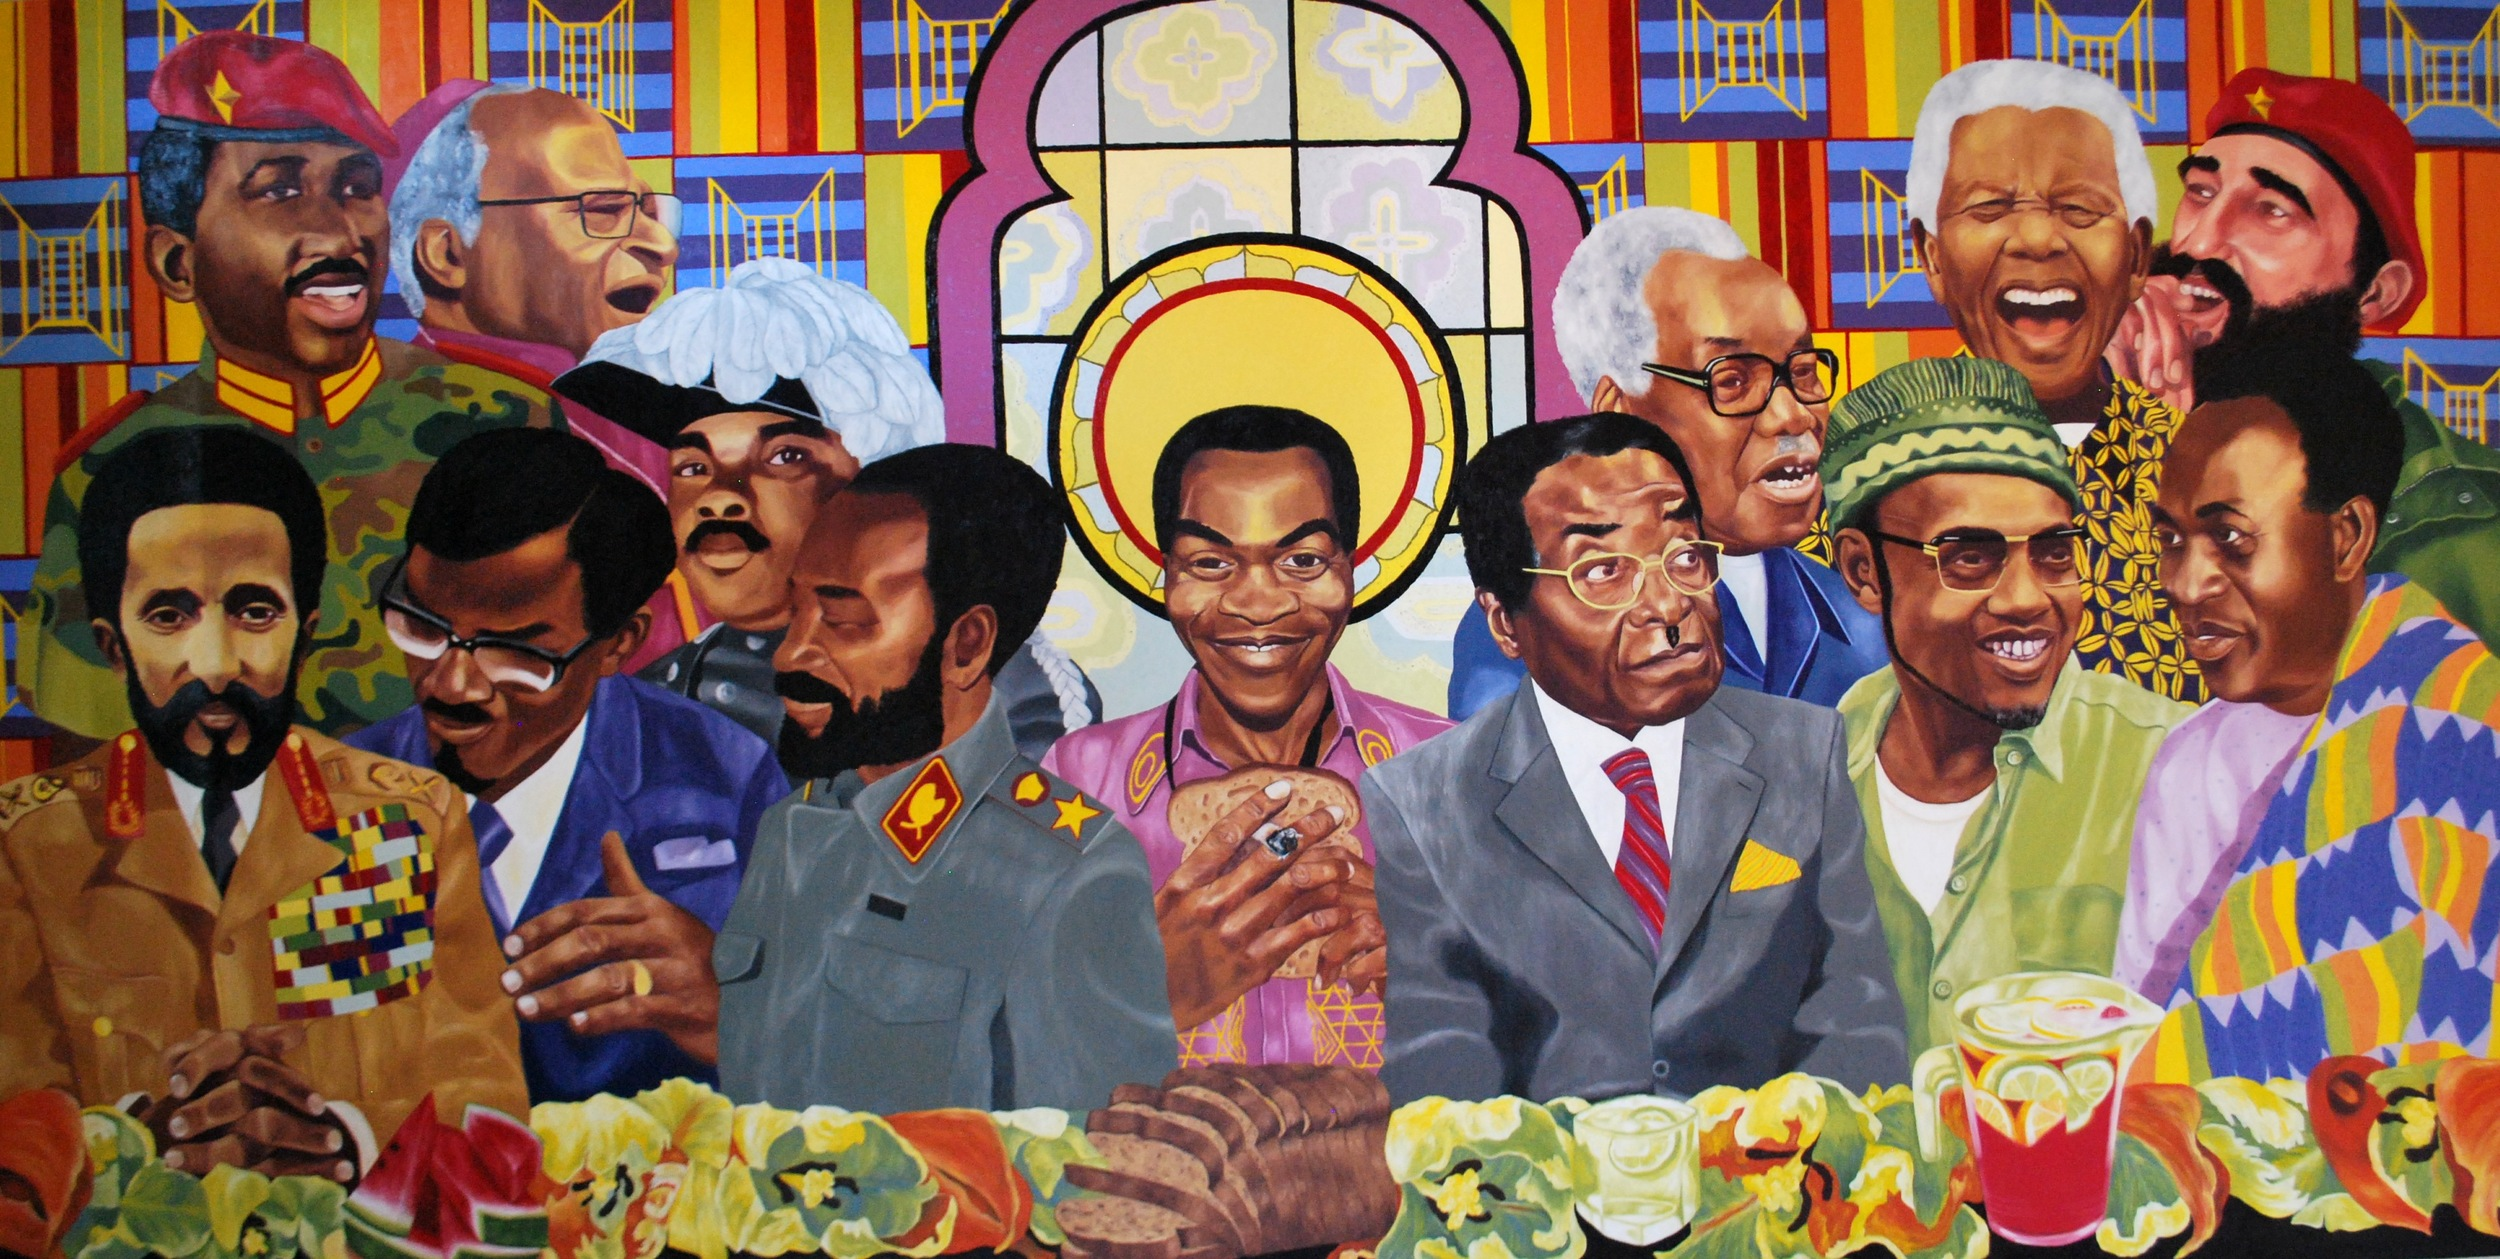 The Last Supper , 2014, oil on canvas, 150cm x 300cm, Sindika Dokolo Collection